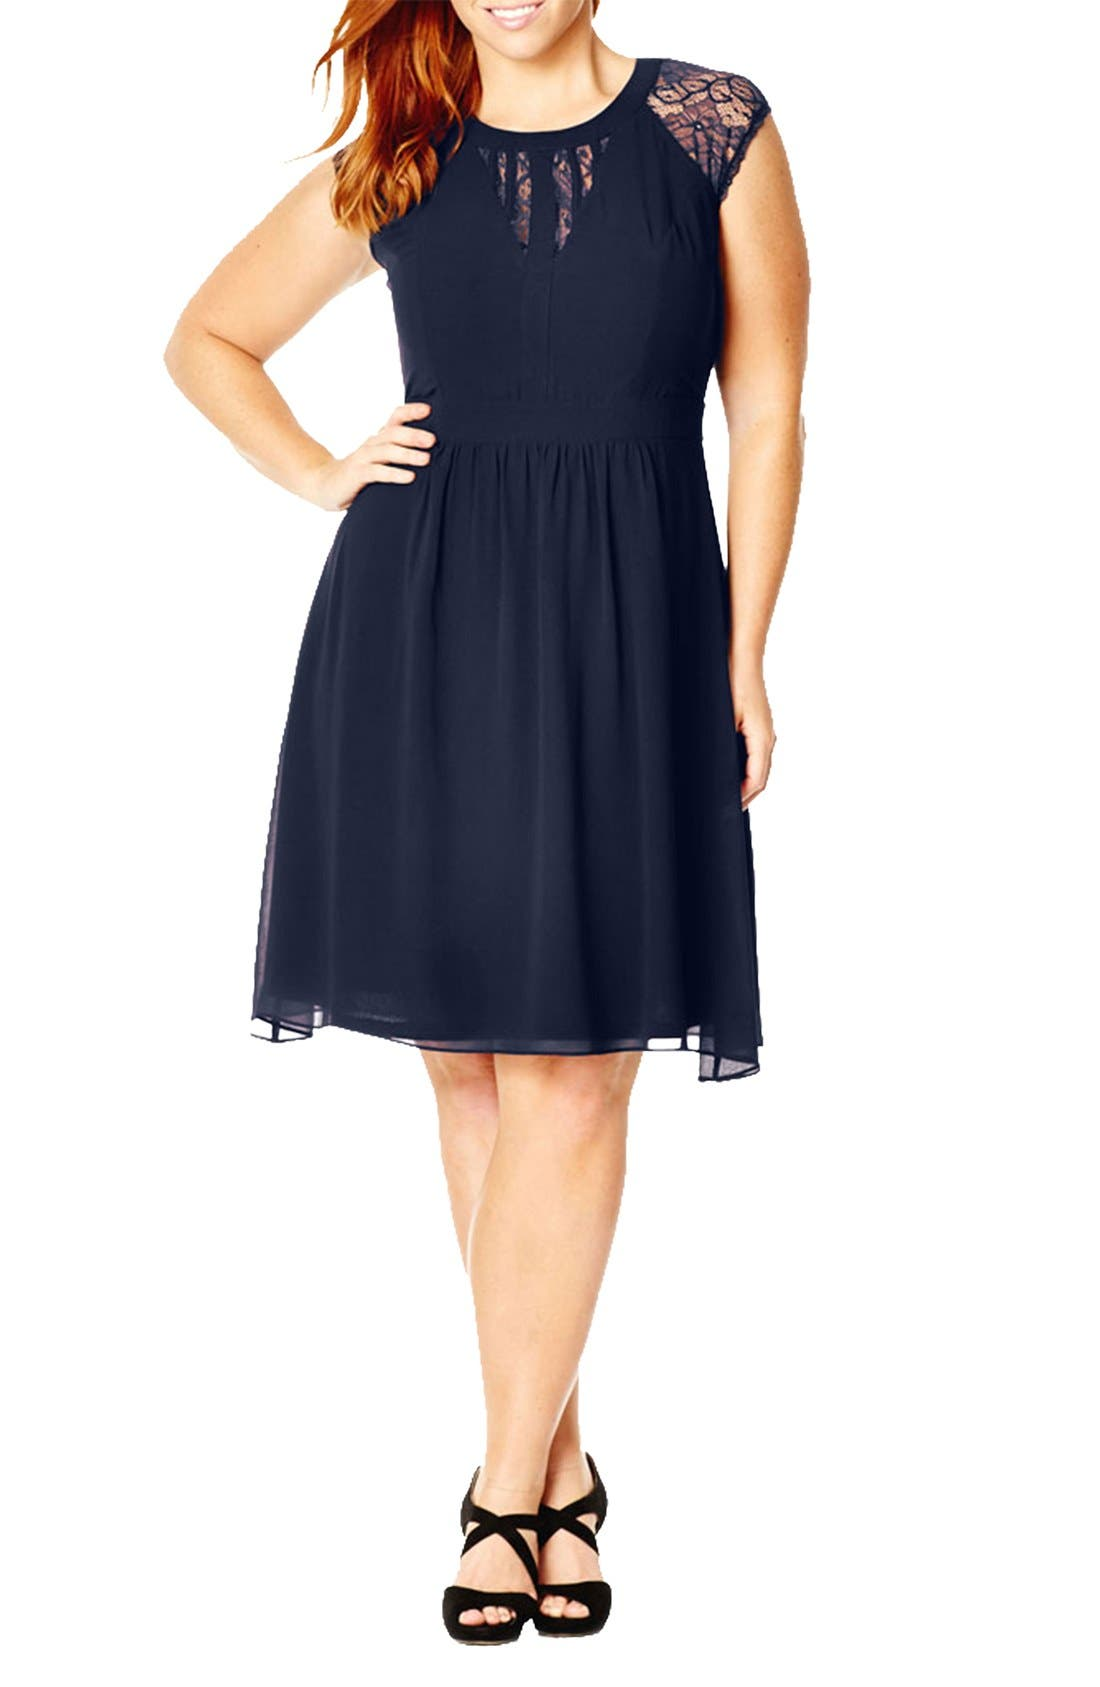 Plus Size City Chic Dark Romance Lace Detail Dress, Blue